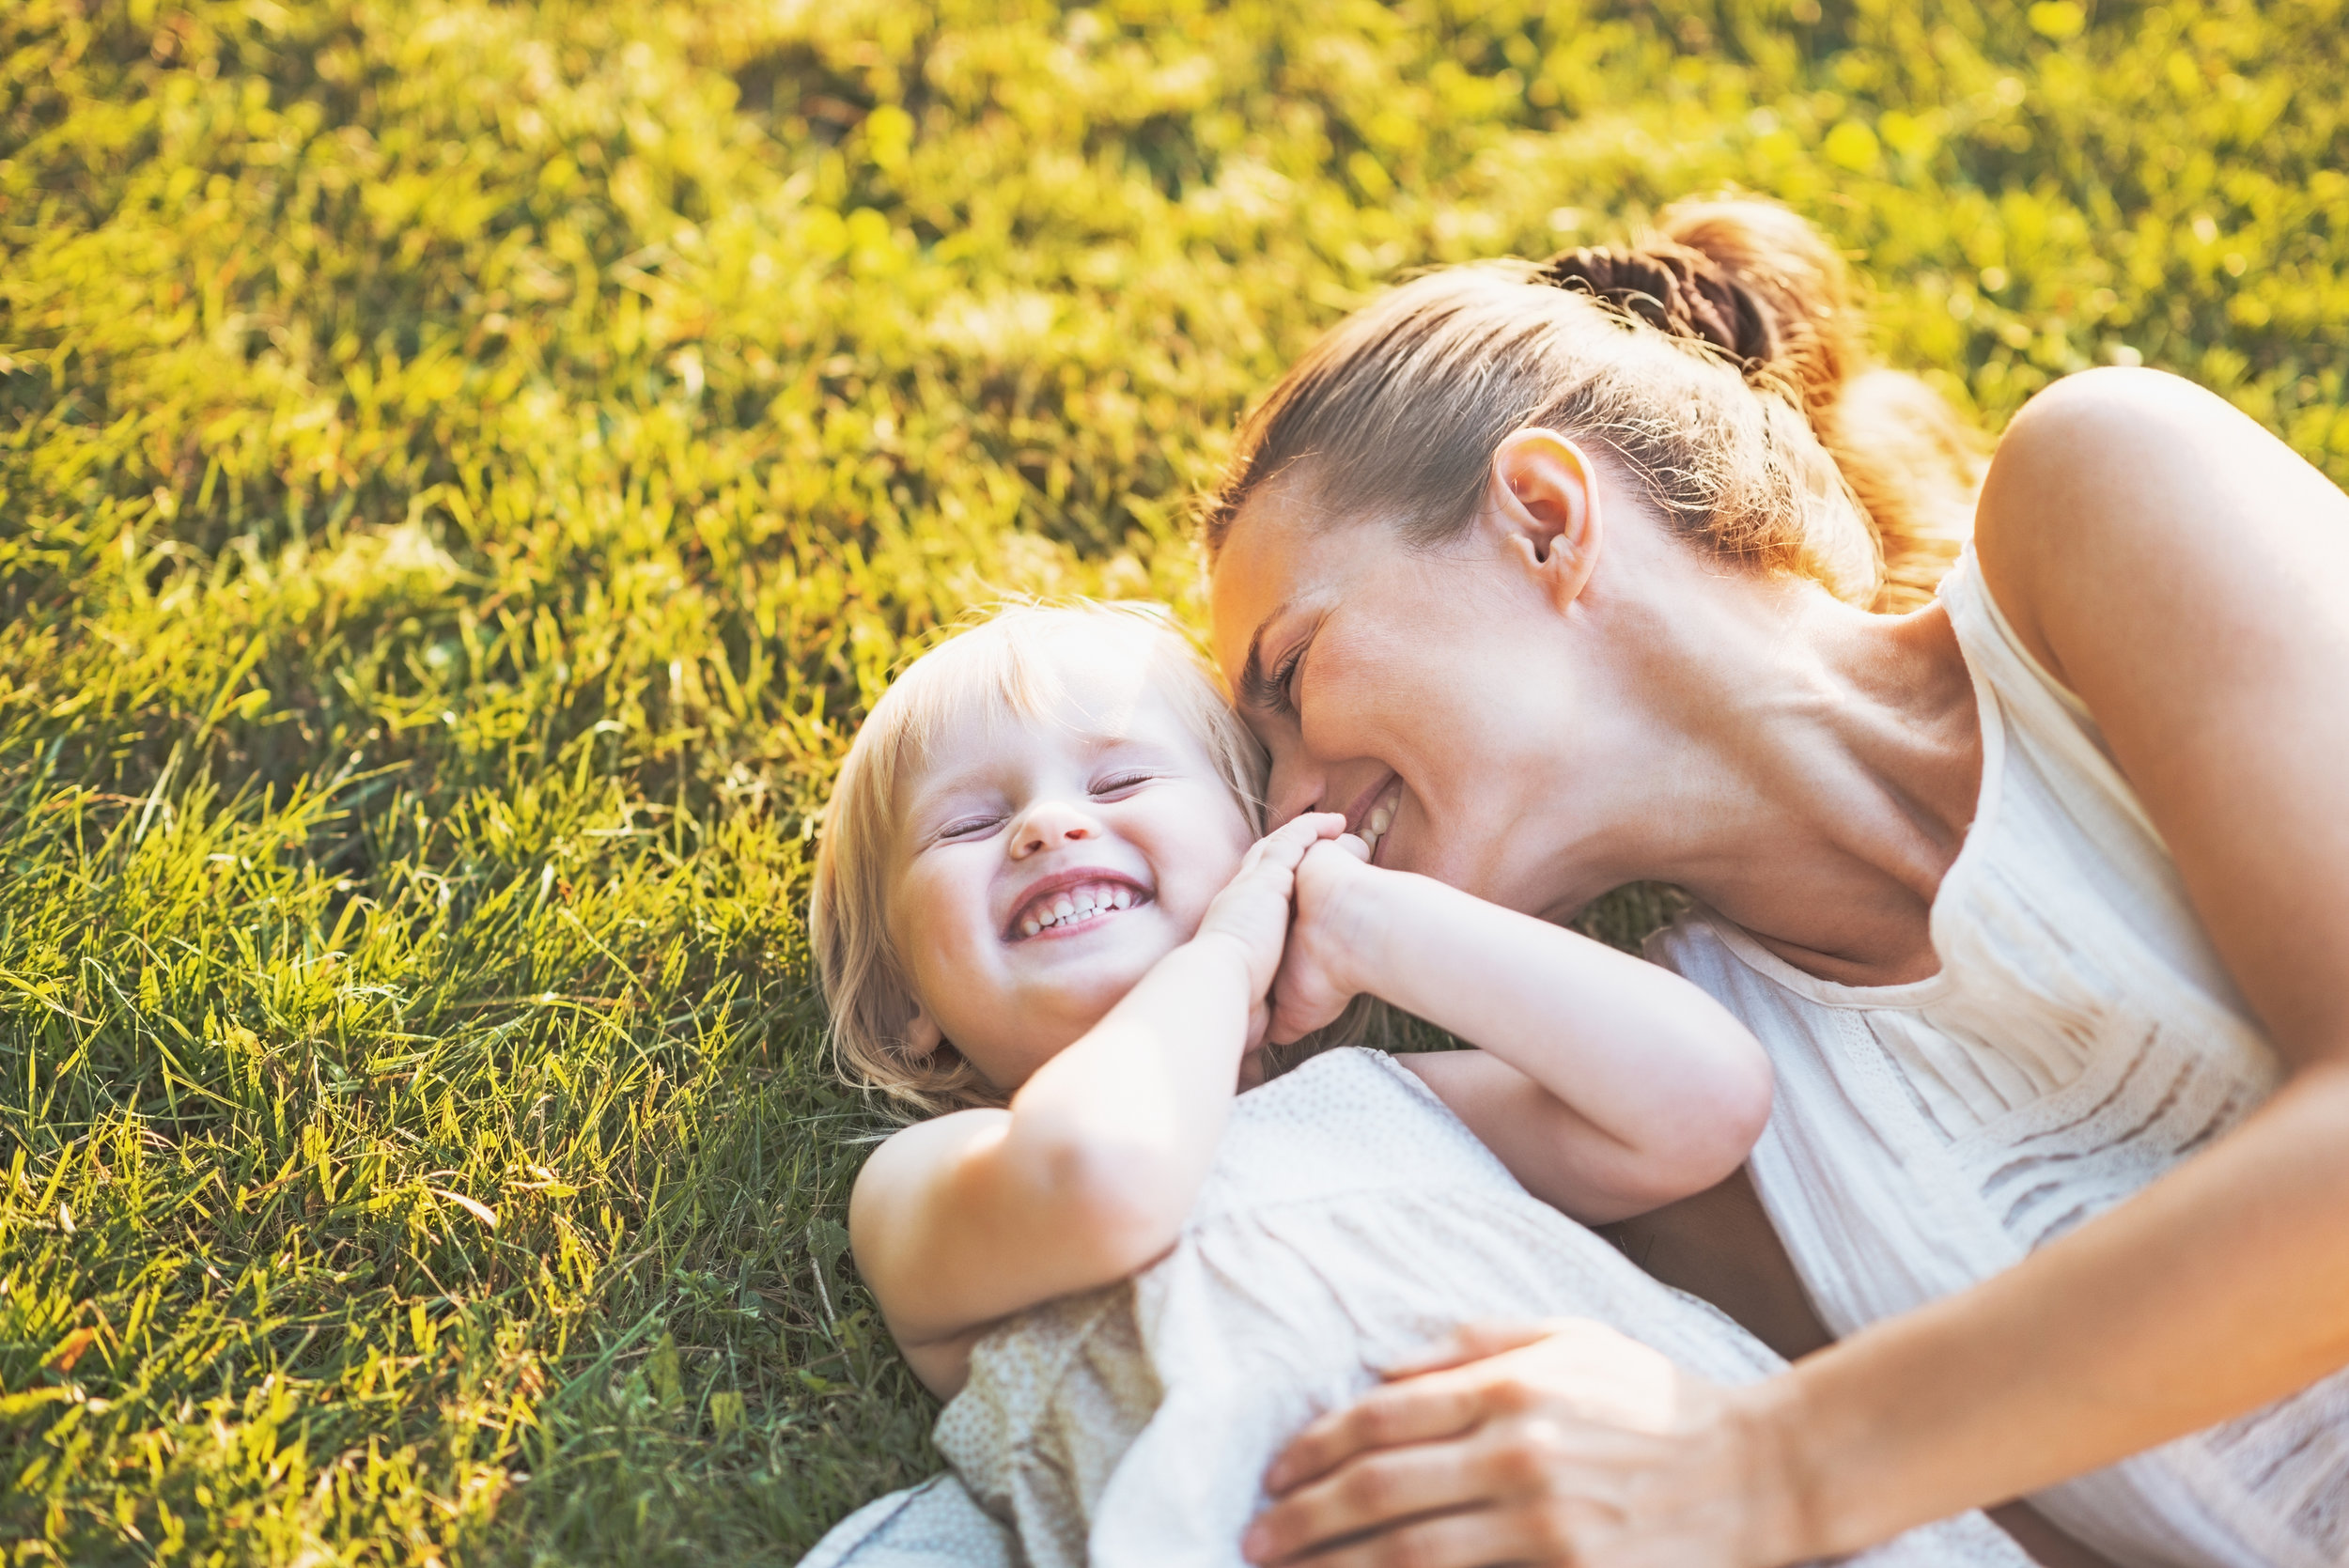 bigstock-Happy-Mother-And-Baby-Laying-O-52321798.jpg